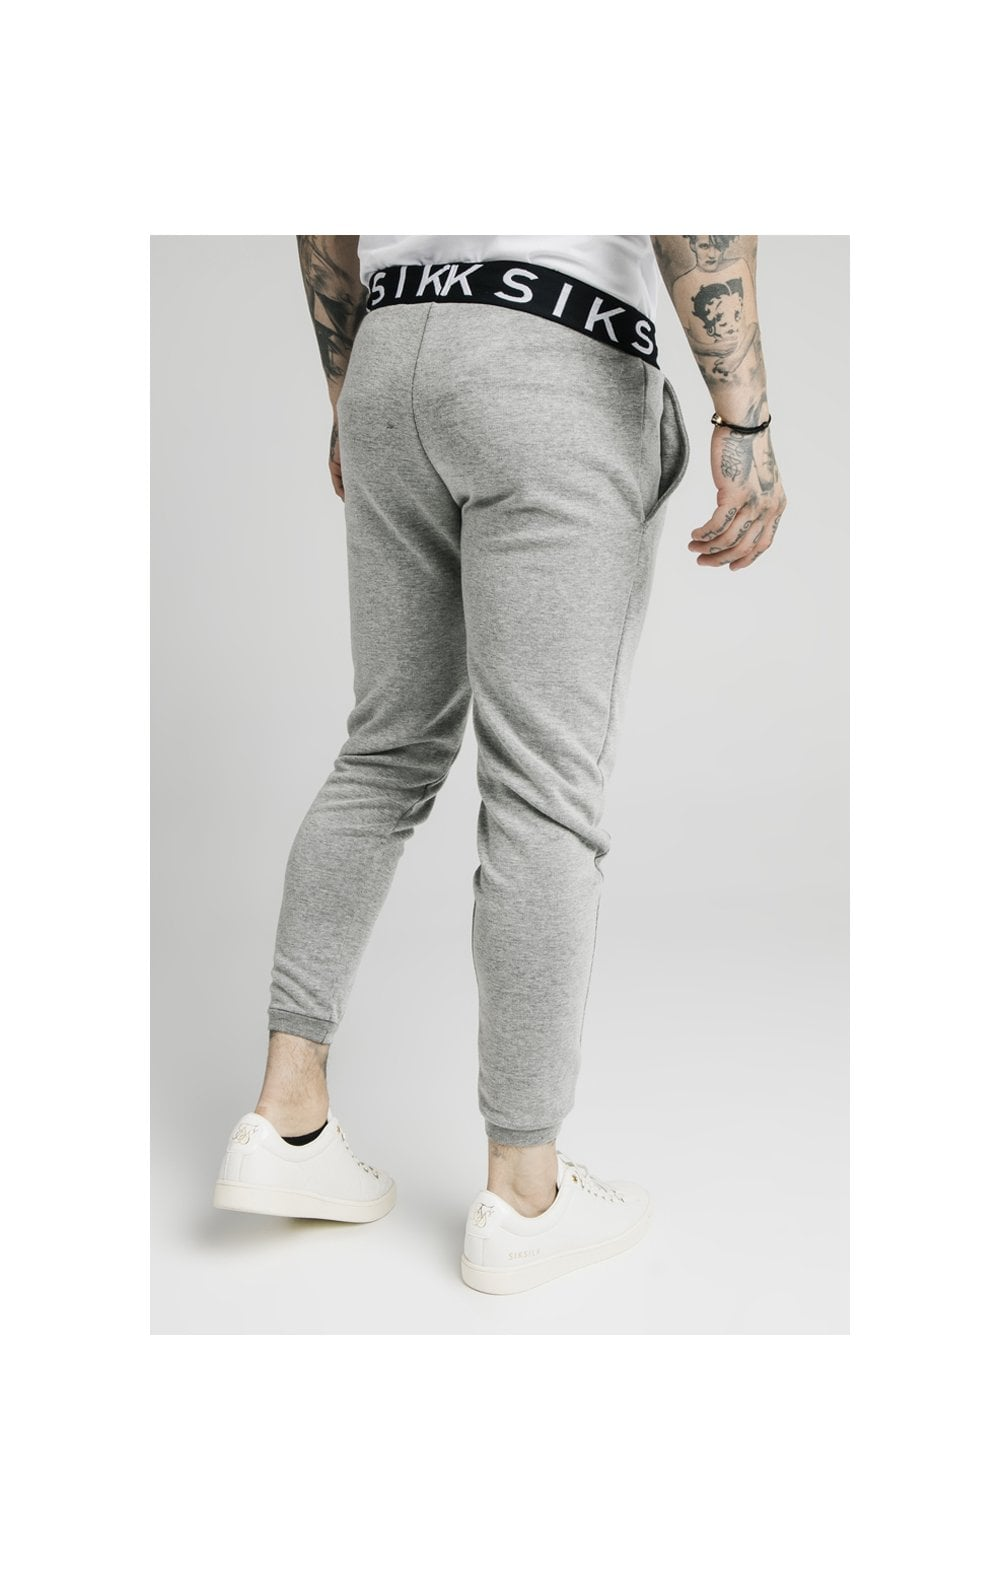 Load image into Gallery viewer, SikSilk Elastic Jacquard Pants - Grey (2)